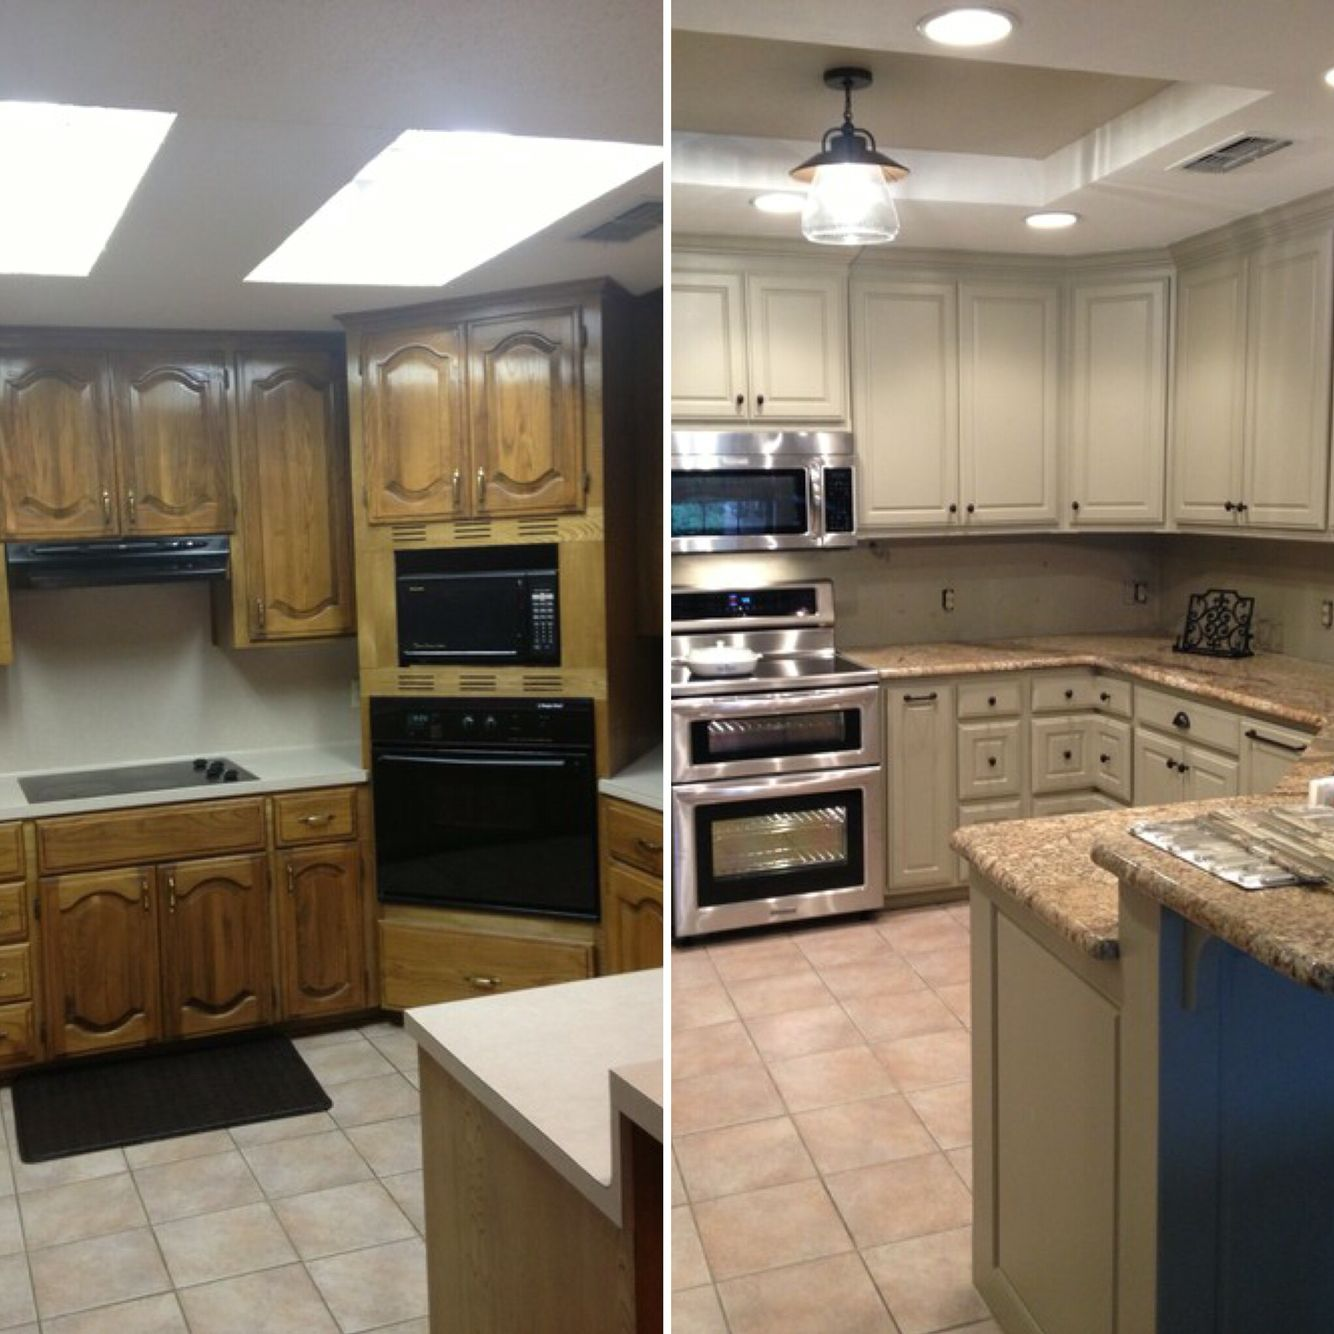 Before and after for updating drop ceiling kitchen fluorescent     Before and after for updating drop ceiling kitchen fluorescent lighting